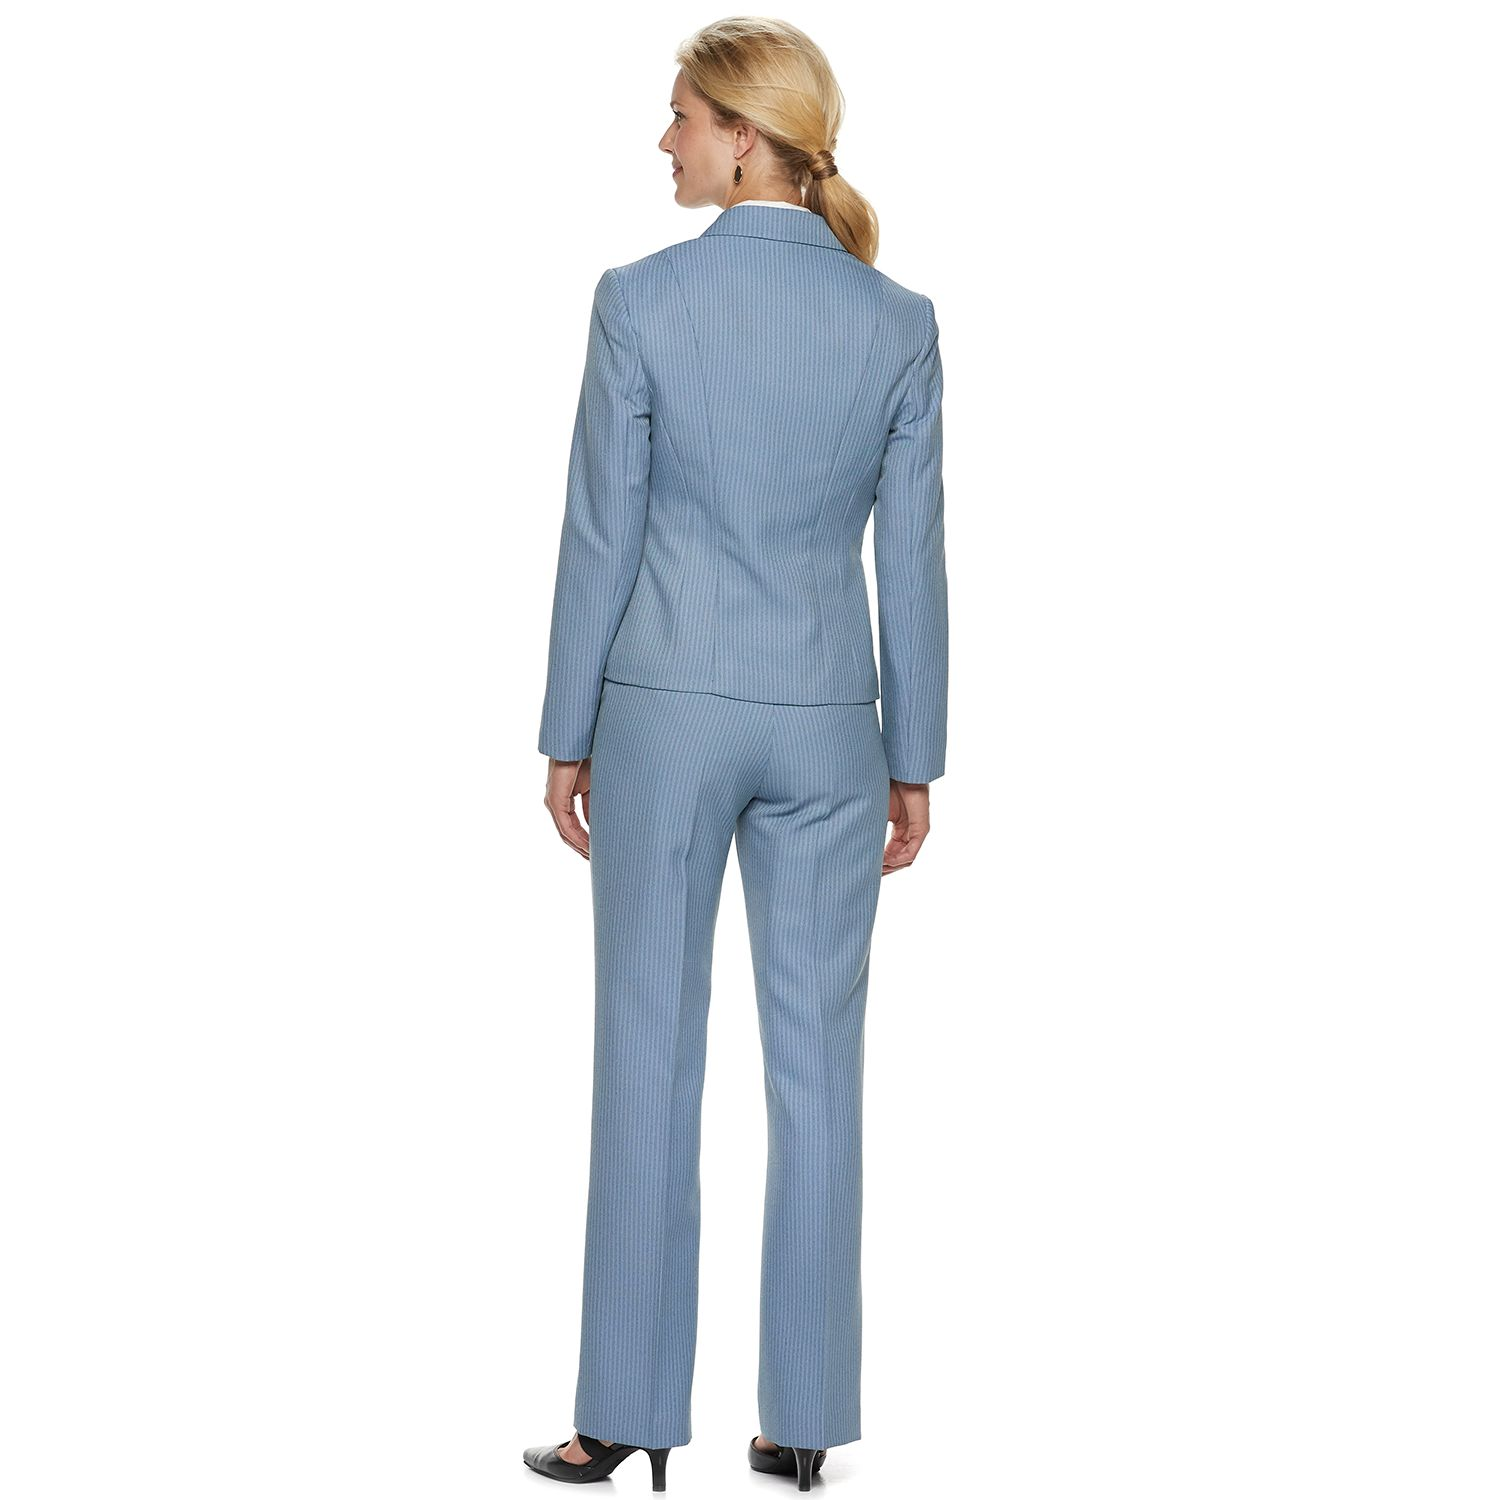 Womens Le Suit Dress Suits, Clothing | Kohl\'s